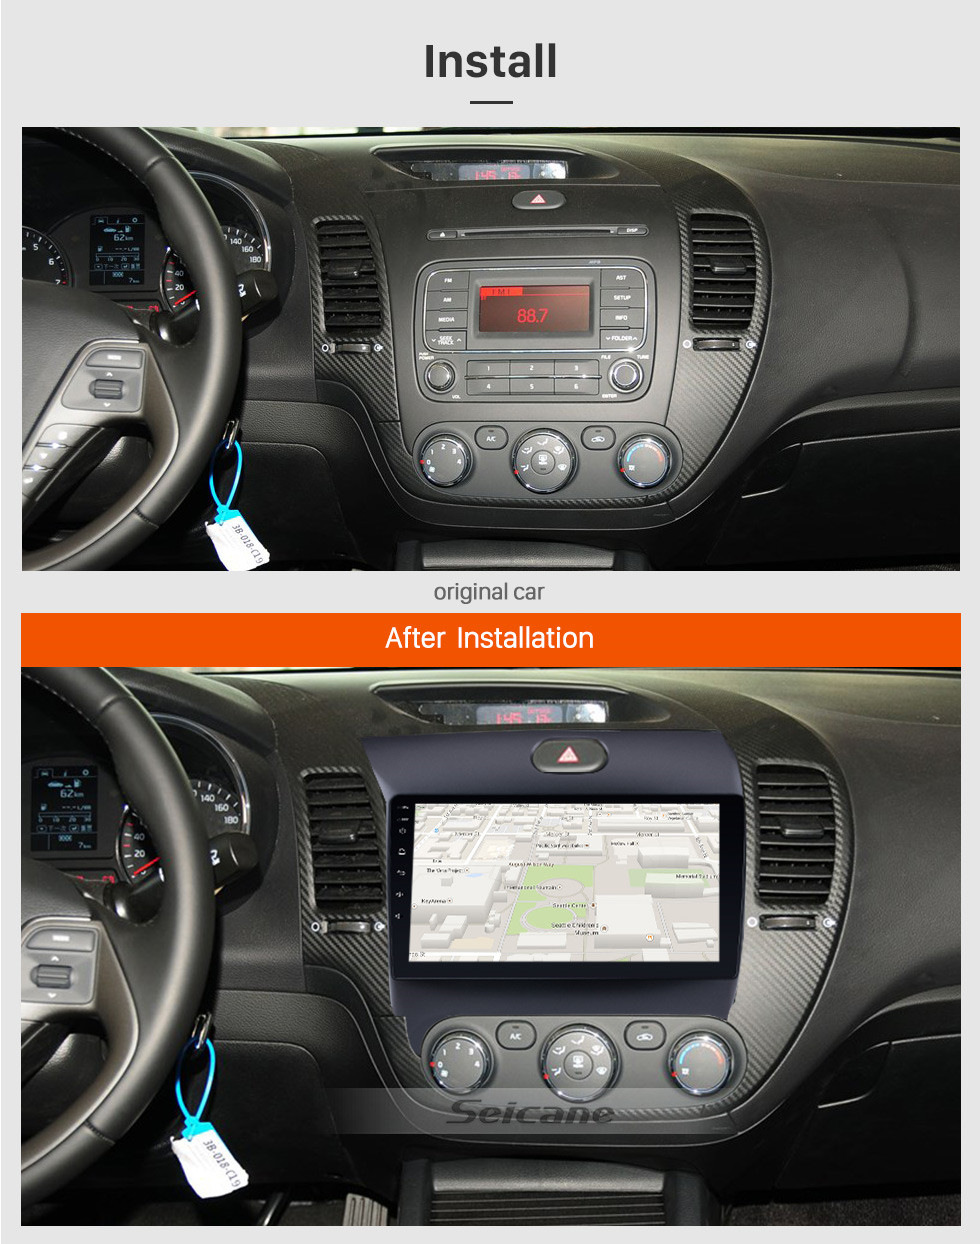 Seicane 9 Inch HD 1024*600 Touchscreen Android 8.1 GPS Navigation Radio for 2013-2016 KIA K3 CERATO FORTE with Bluetooth USB WIFI OBD2 Mirror Link Rearview Camera 1080P Video